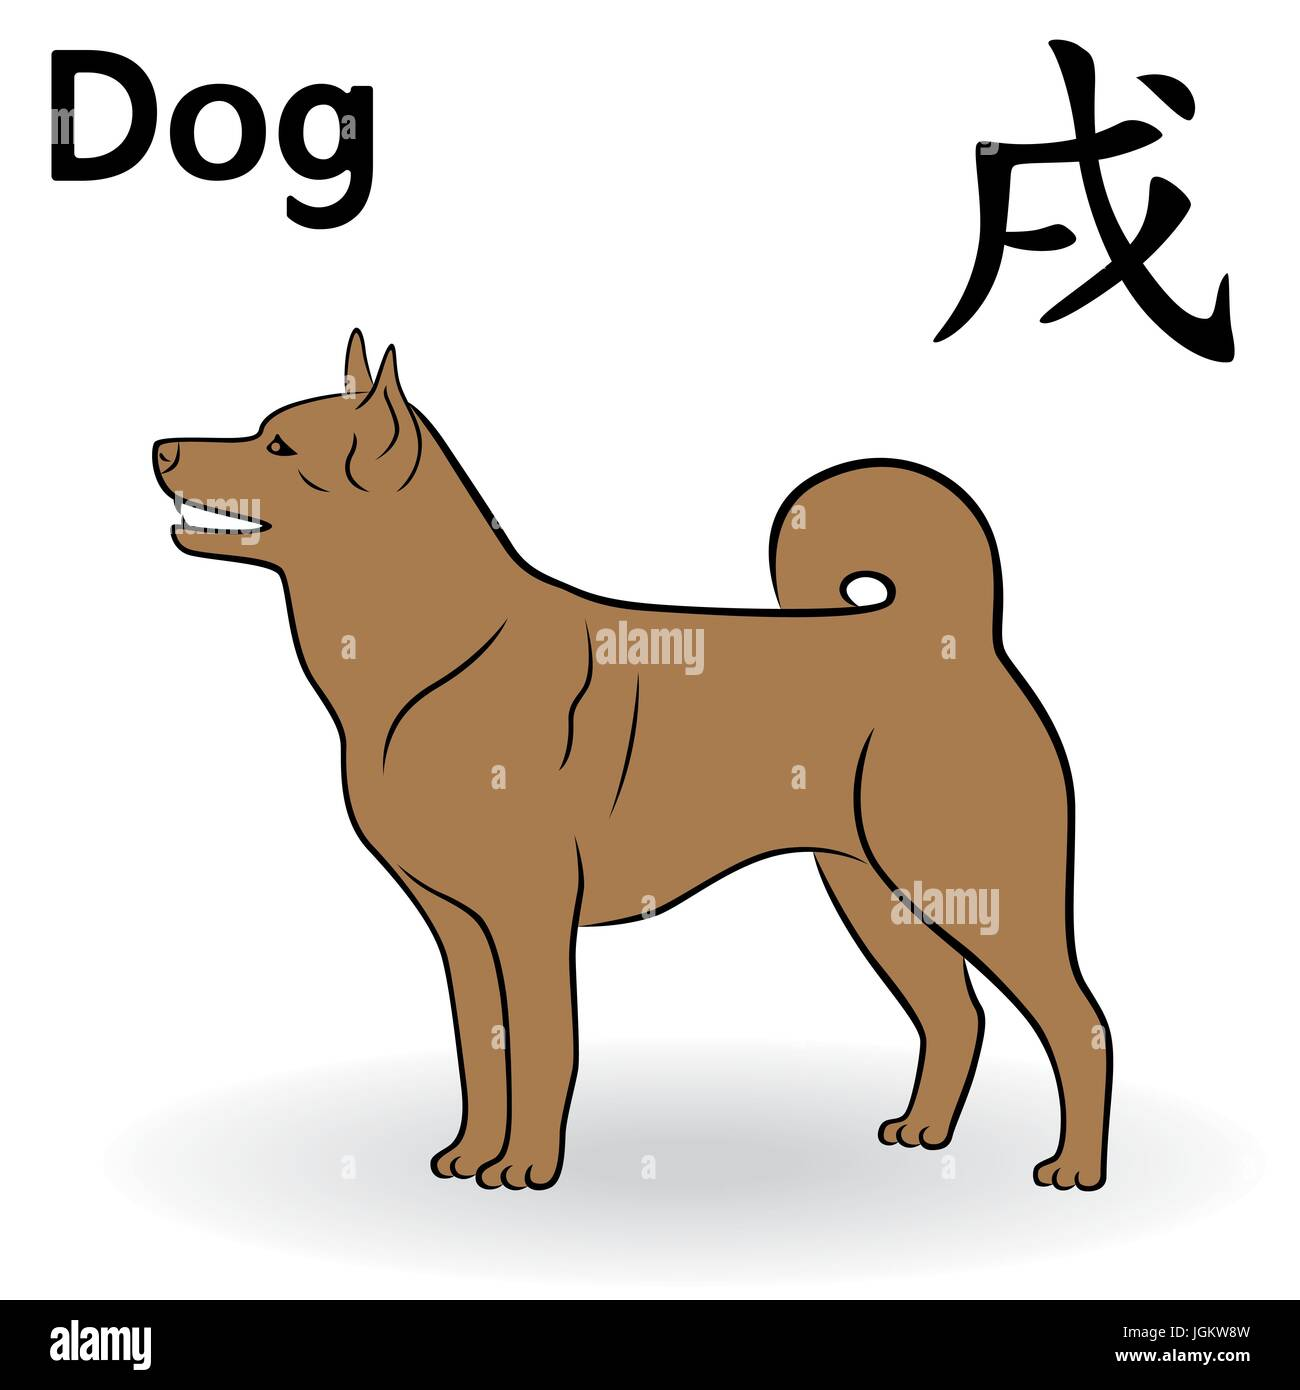 Chinese zodiac sign dog in brown color symbol of new year on the chinese zodiac sign dog in brown color symbol of new year on the eastern calendar hand drawn vector cartoon illustration isolated on a white backgro buycottarizona